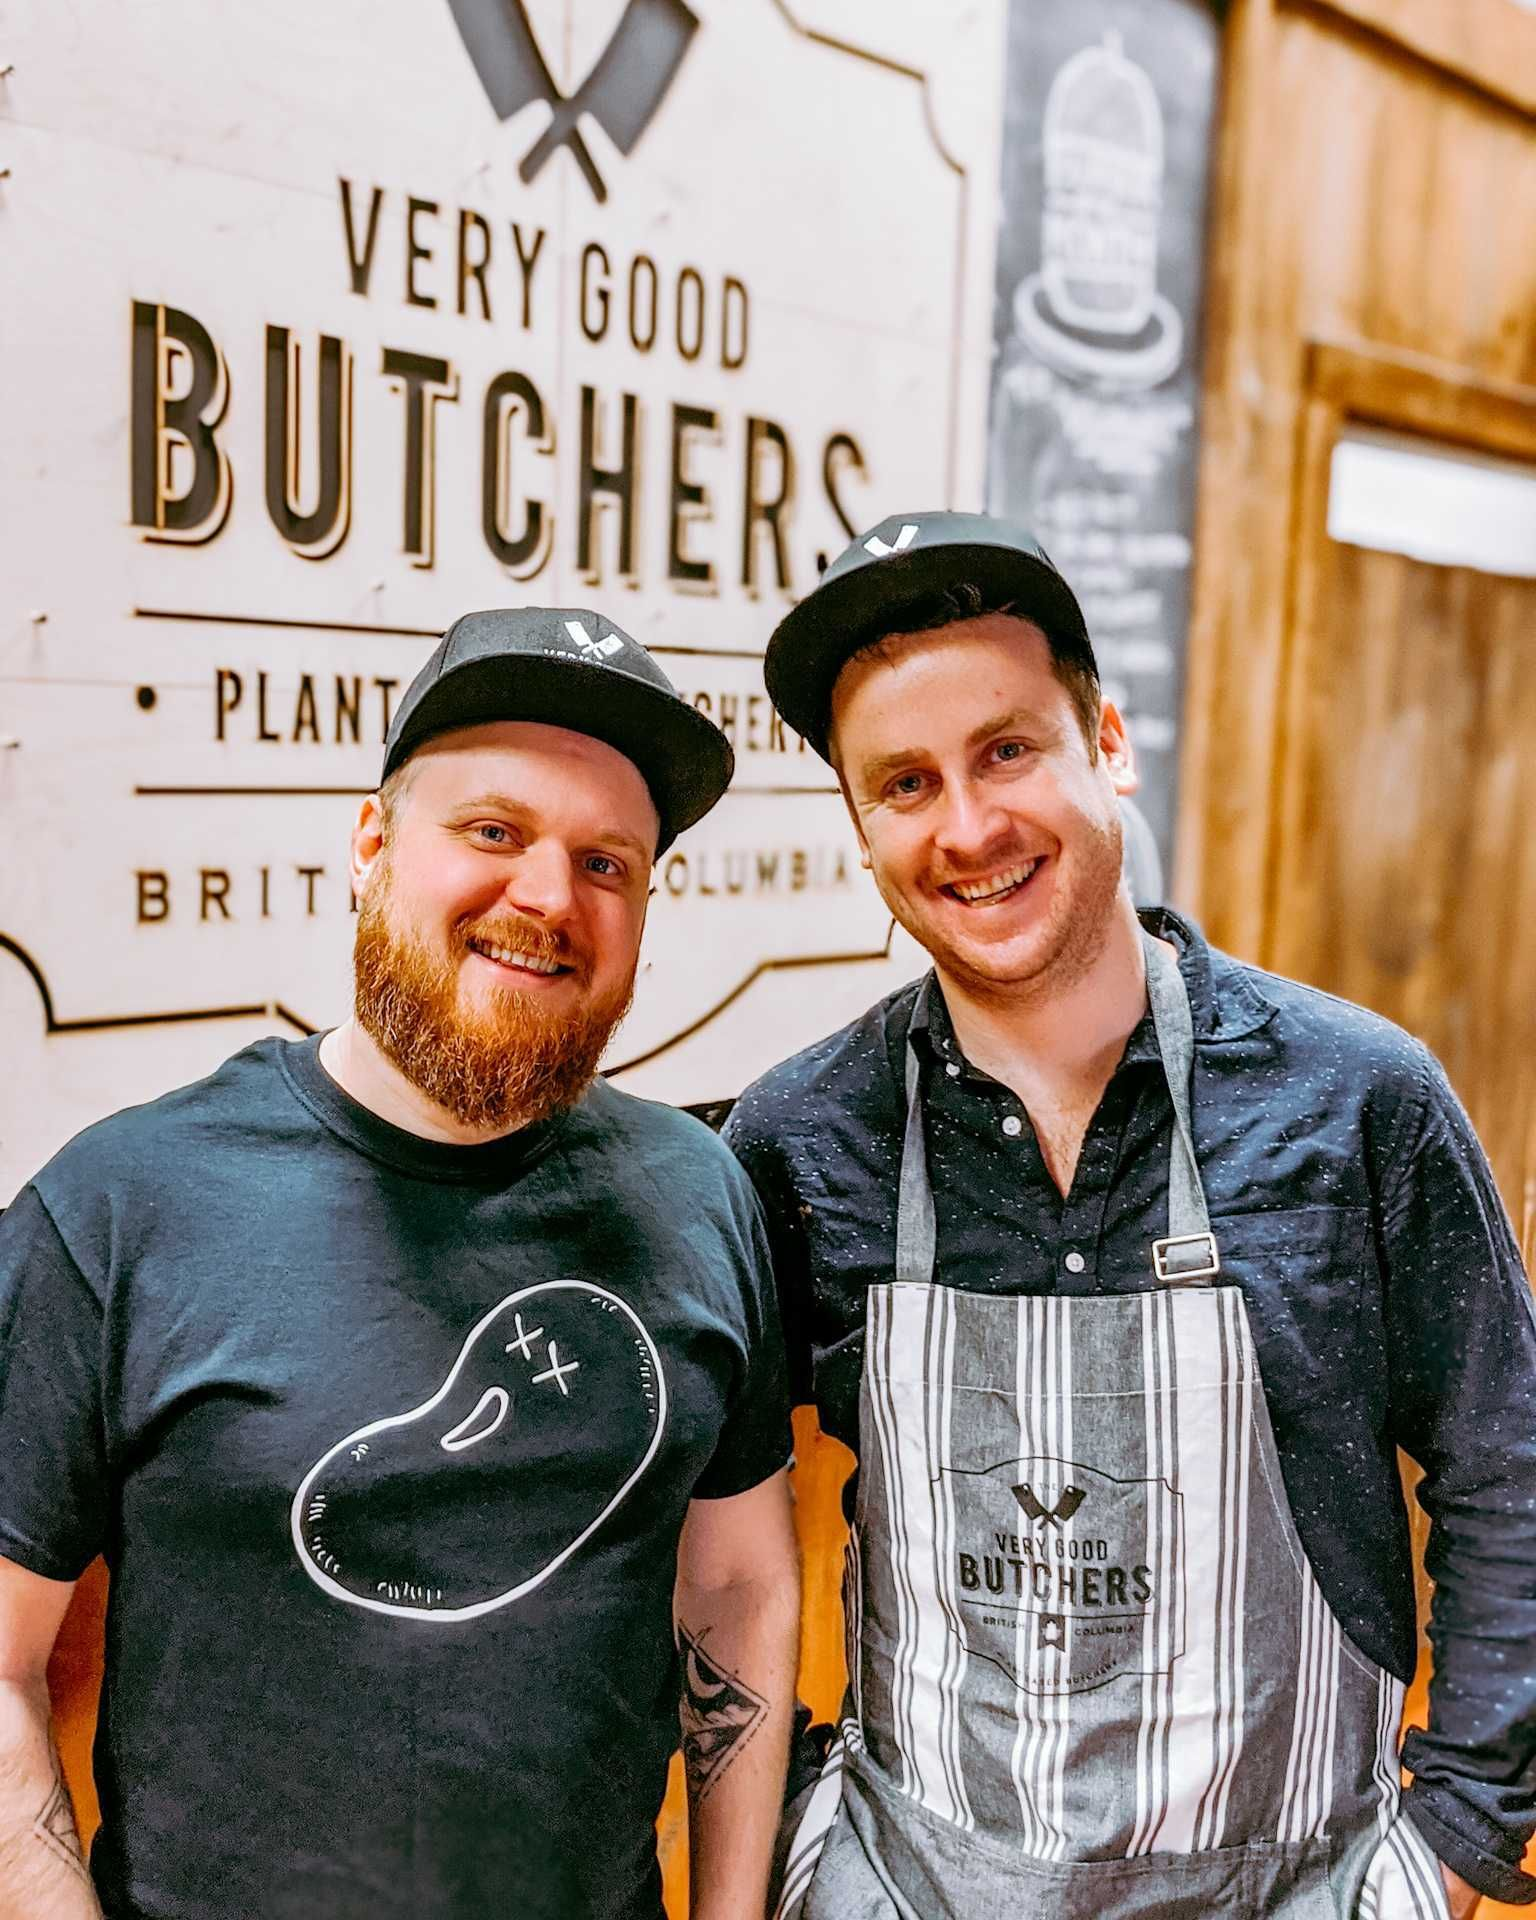 The Very Good Butchers team up with Pamela Anderson